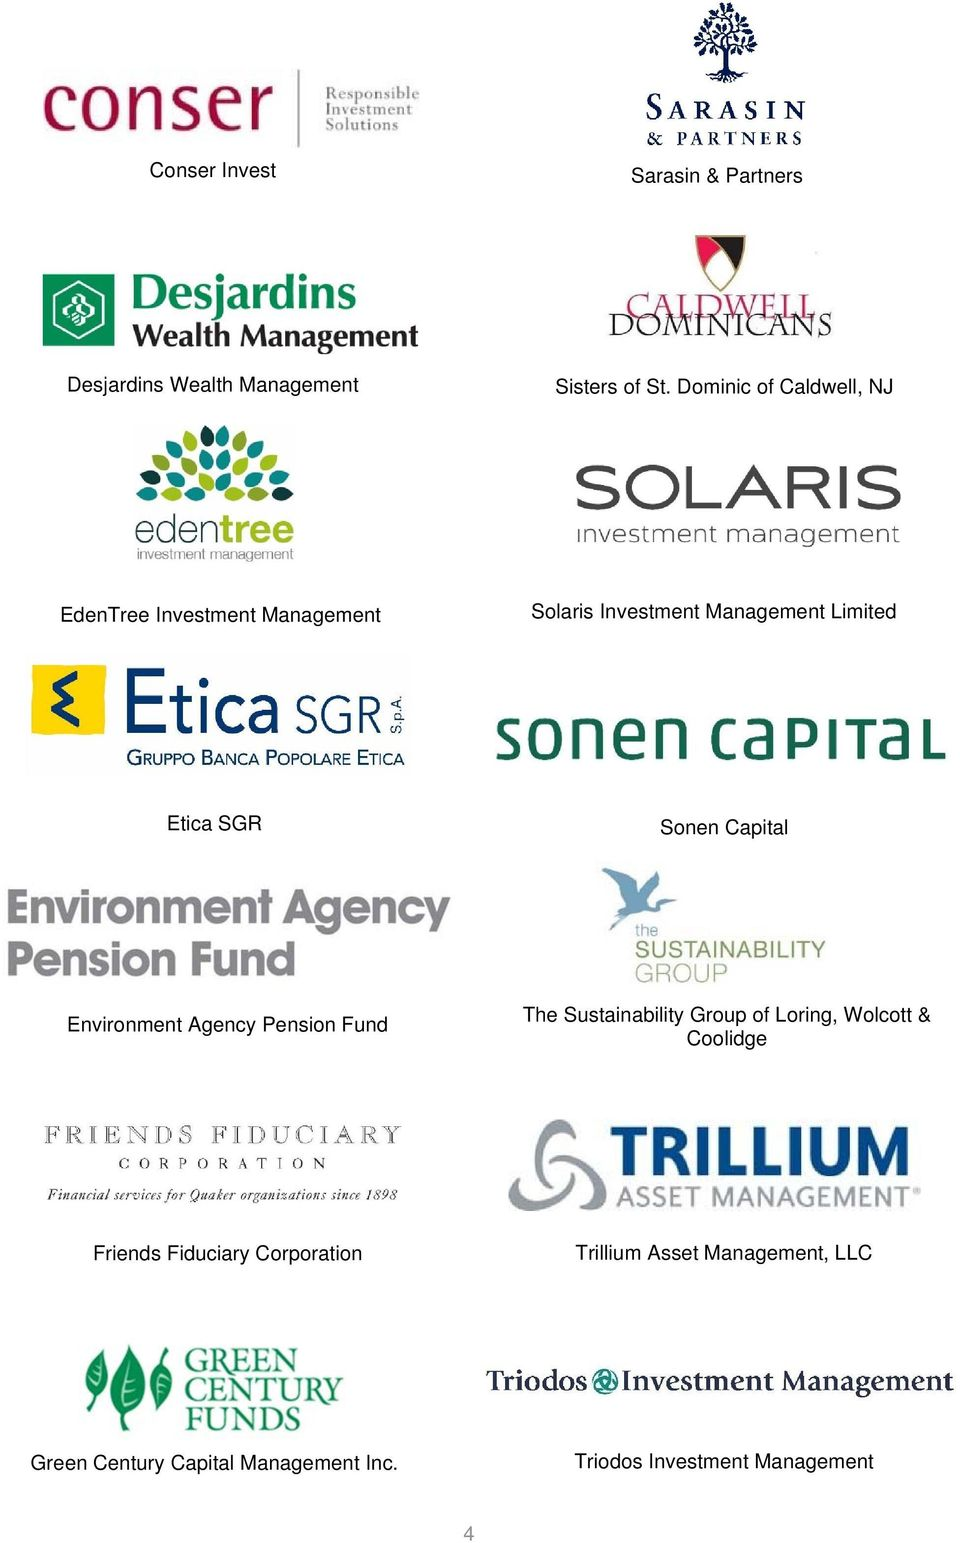 Sonen Capital Environment Agency Pension Fund The Sustainability Group of Loring, Wolcott & Coolidge